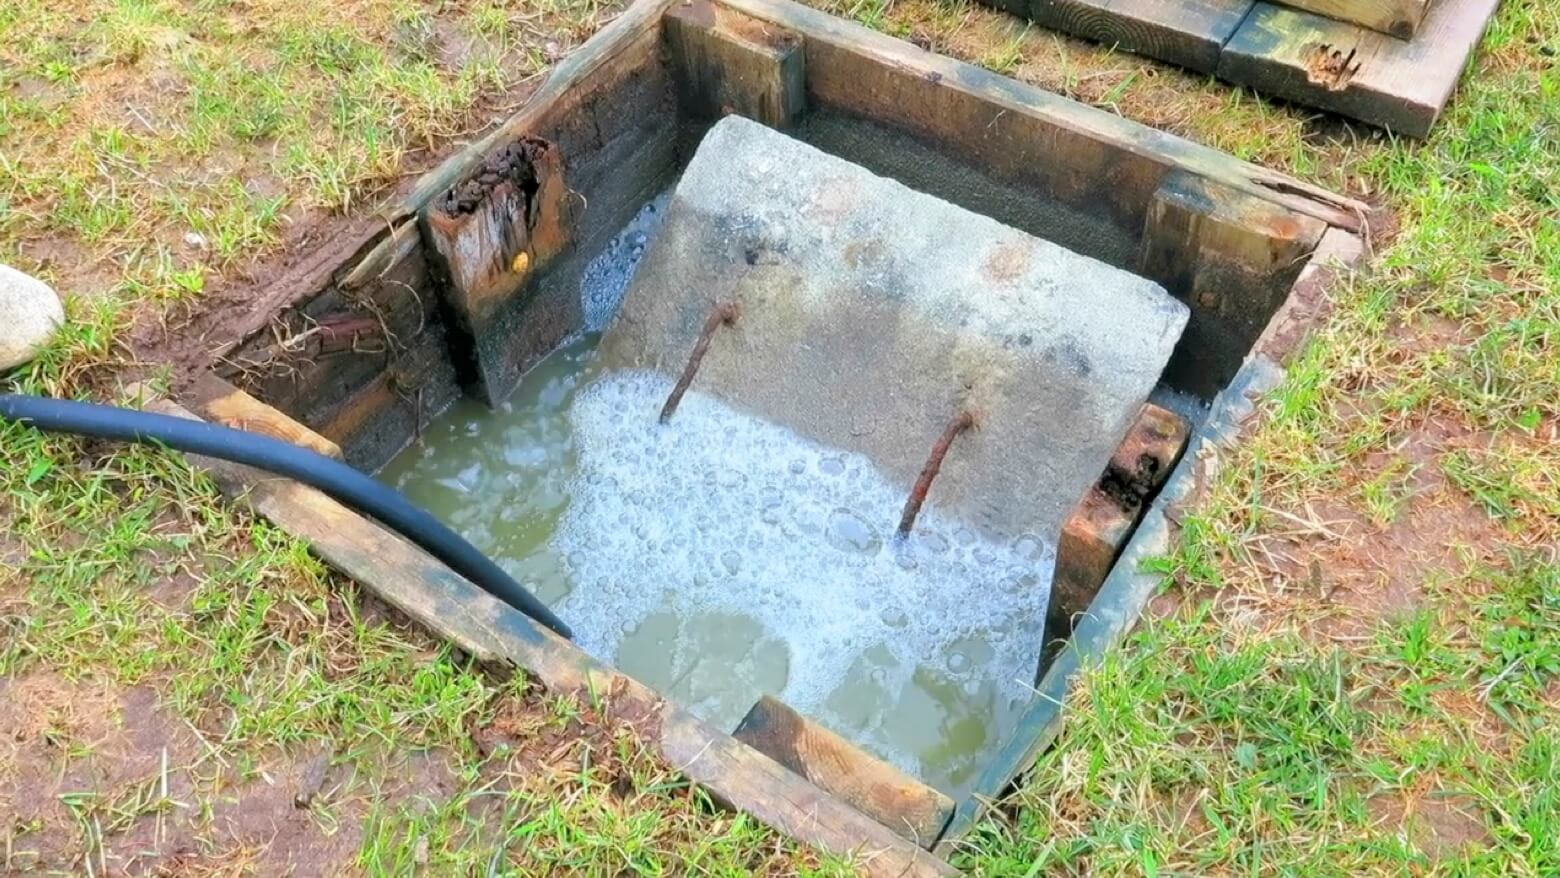 Septic Tank Pumping-Santa Maria Septic Tank Services, Installation, & Repairs-We offer Septic Service & Repairs, Septic Tank Installations, Septic Tank Cleaning, Commercial, Septic System, Drain Cleaning, Line Snaking, Portable Toilet, Grease Trap Pumping & Cleaning, Septic Tank Pumping, Sewage Pump, Sewer Line Repair, Septic Tank Replacement, Septic Maintenance, Sewer Line Replacement, Porta Potty Rentals